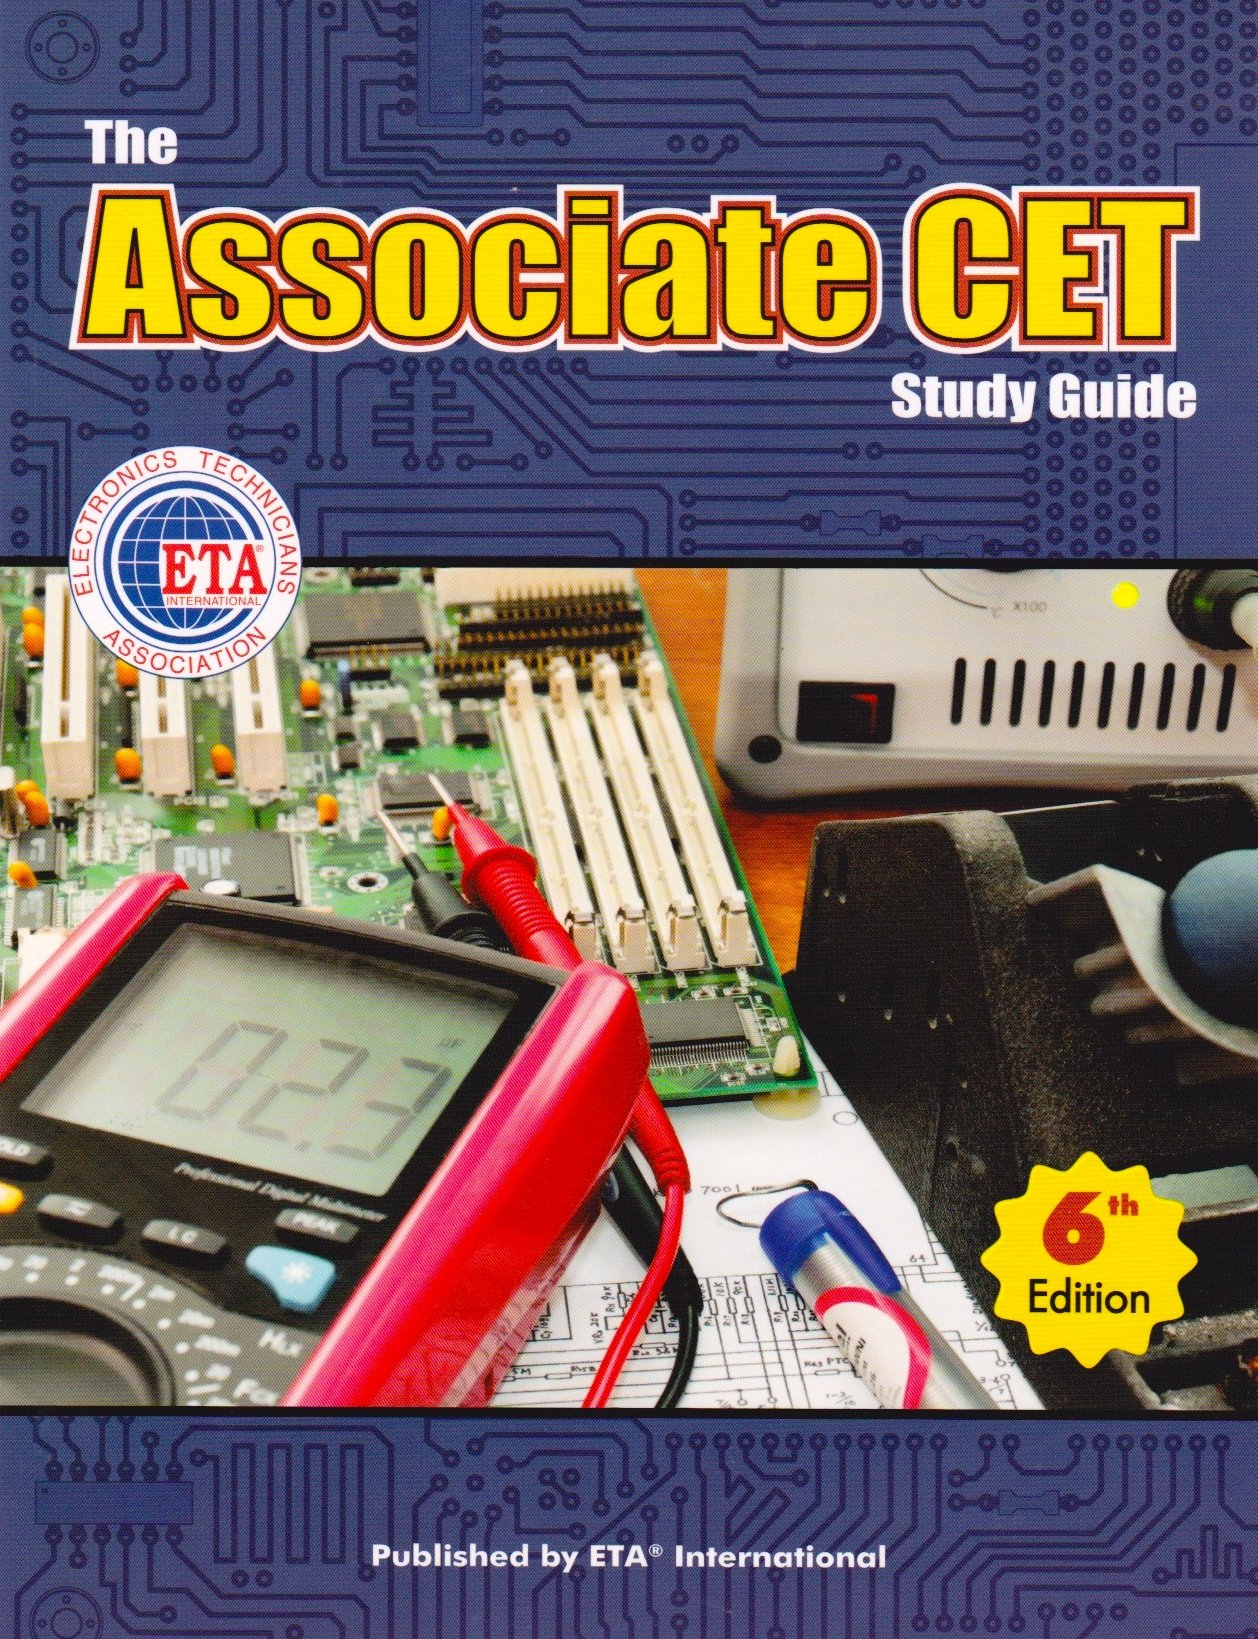 the associate cet study guide 9781891749070 amazon com books rh amazon com  associate cet study guide - 6th edition